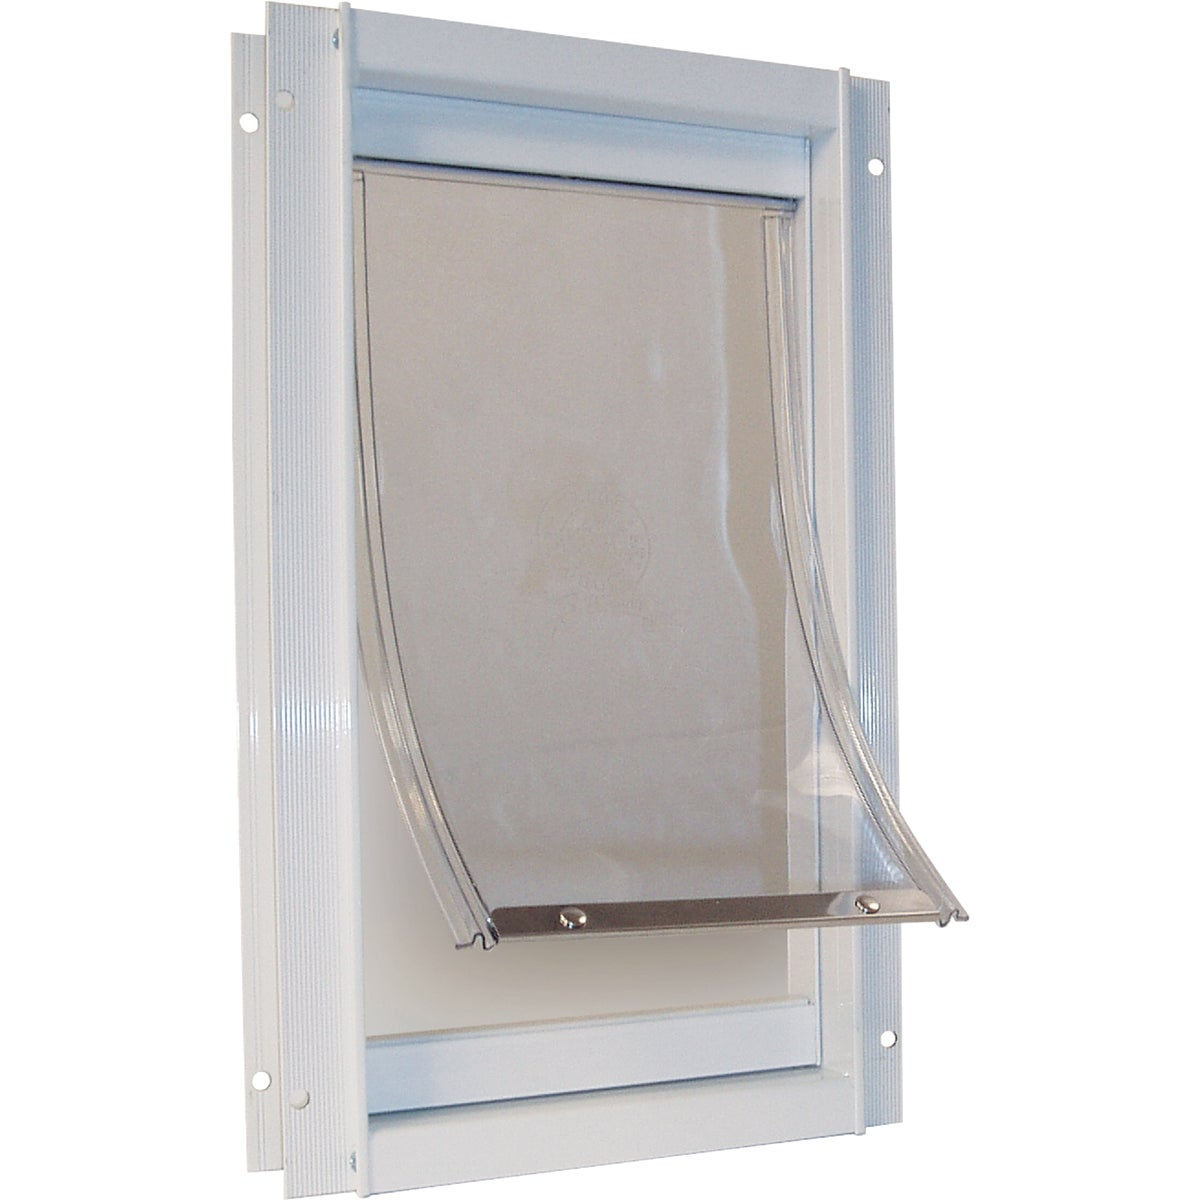 MEDIUM ALUMINUM PET DOOR - DDMW by Ideal Pet Products